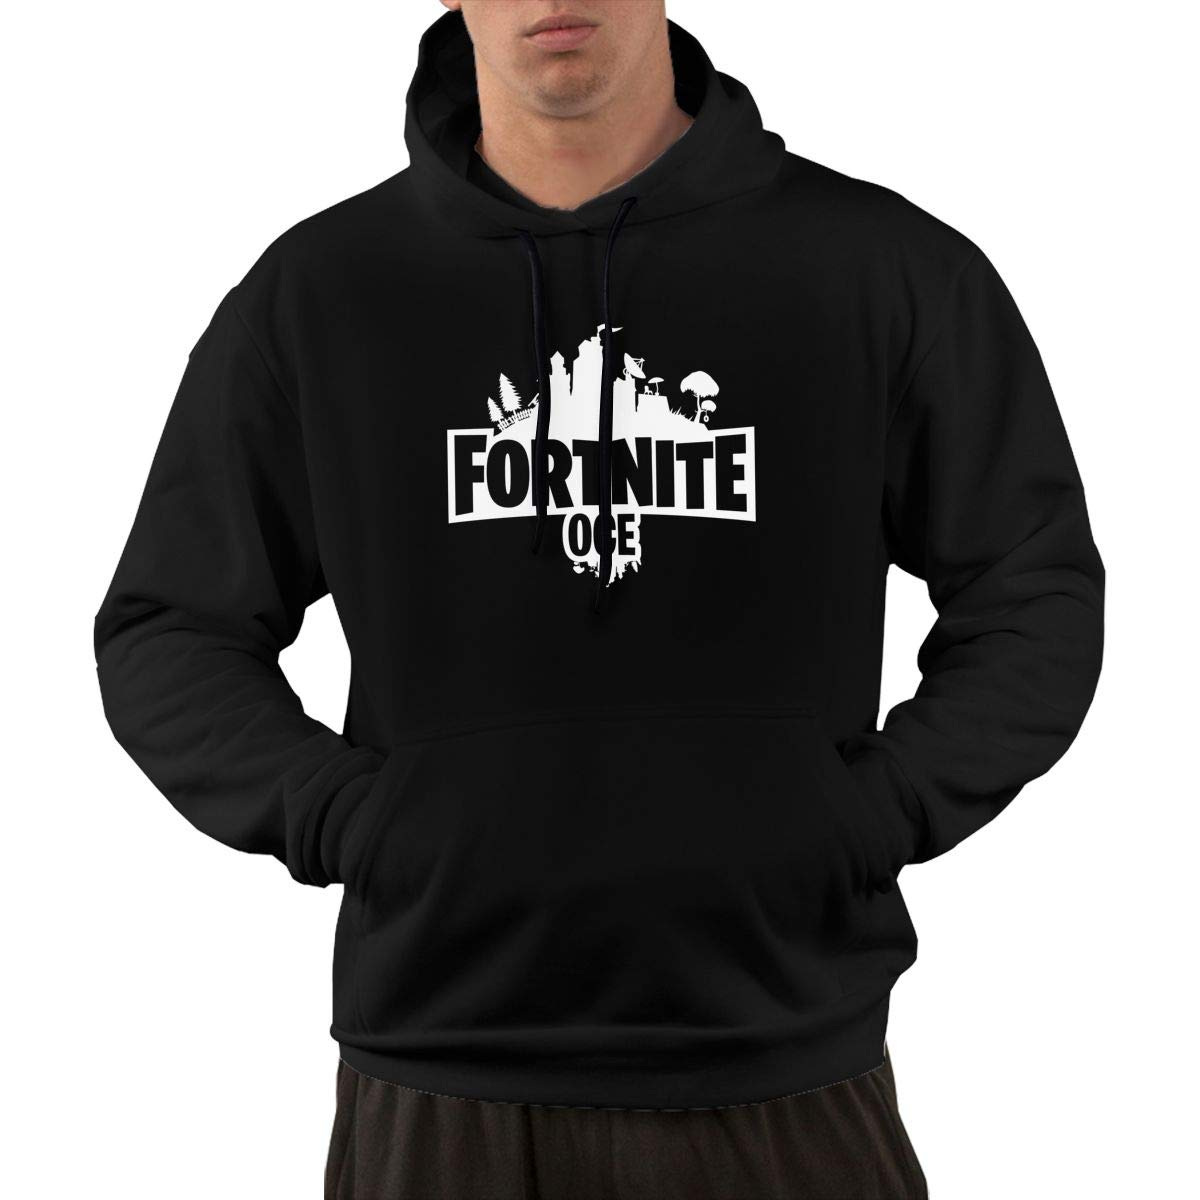 Fortnite Men's Lone Sleeve Hoodies Sweatshirt Fashion Graphic Pullover With Pocket Little Petman